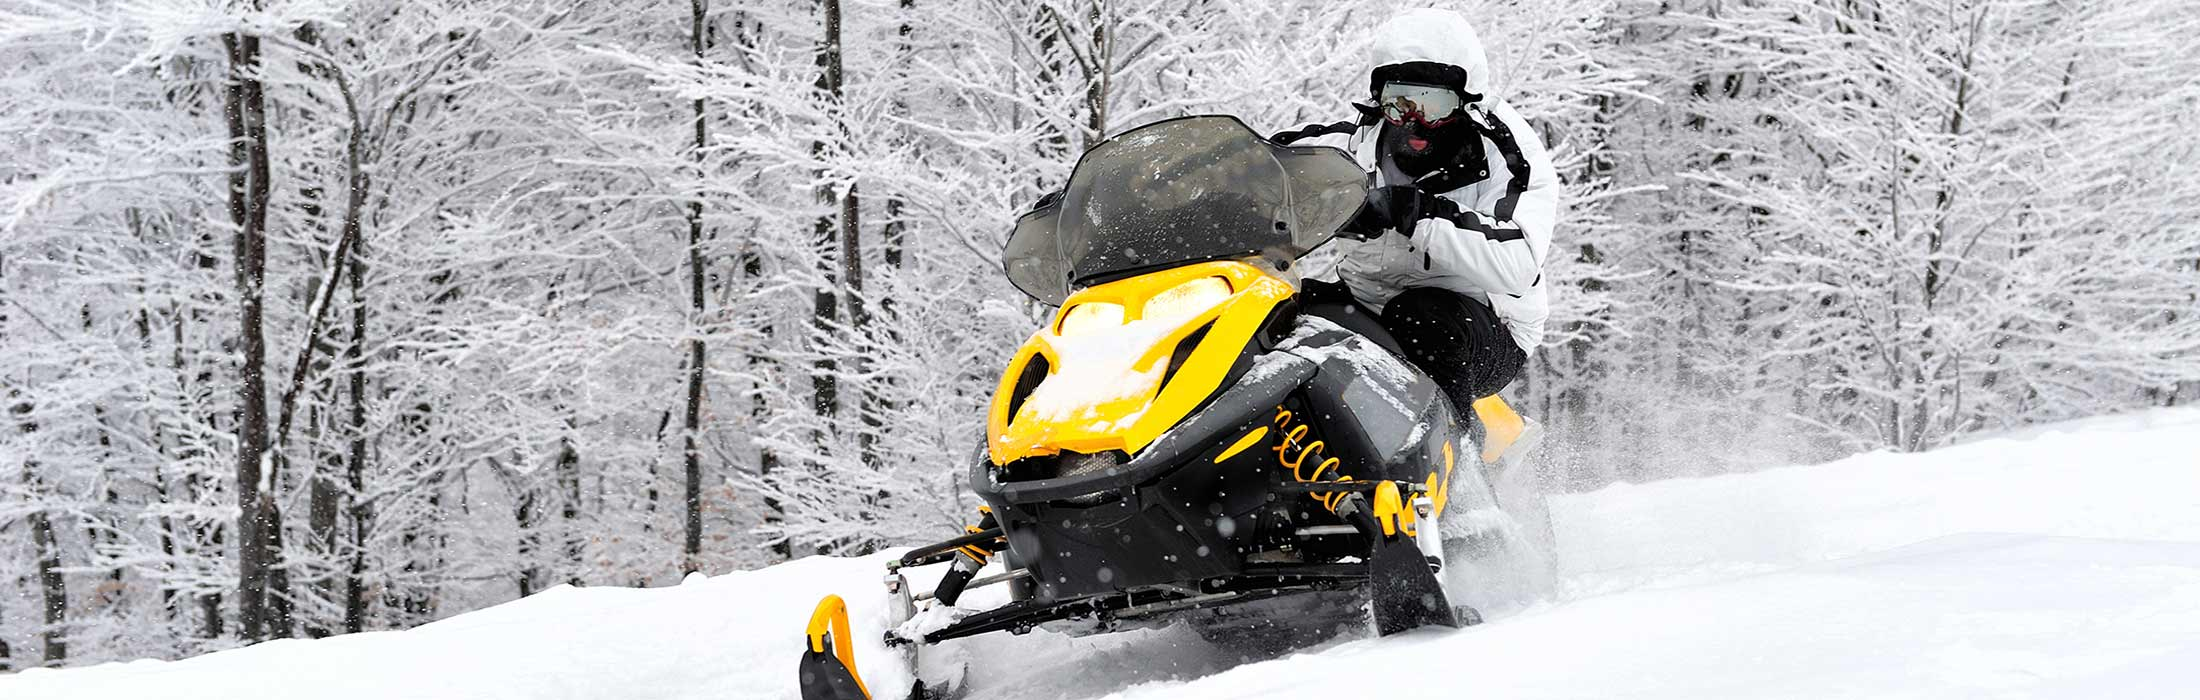 ATV, OHV and Snowmobiling in Sanders County